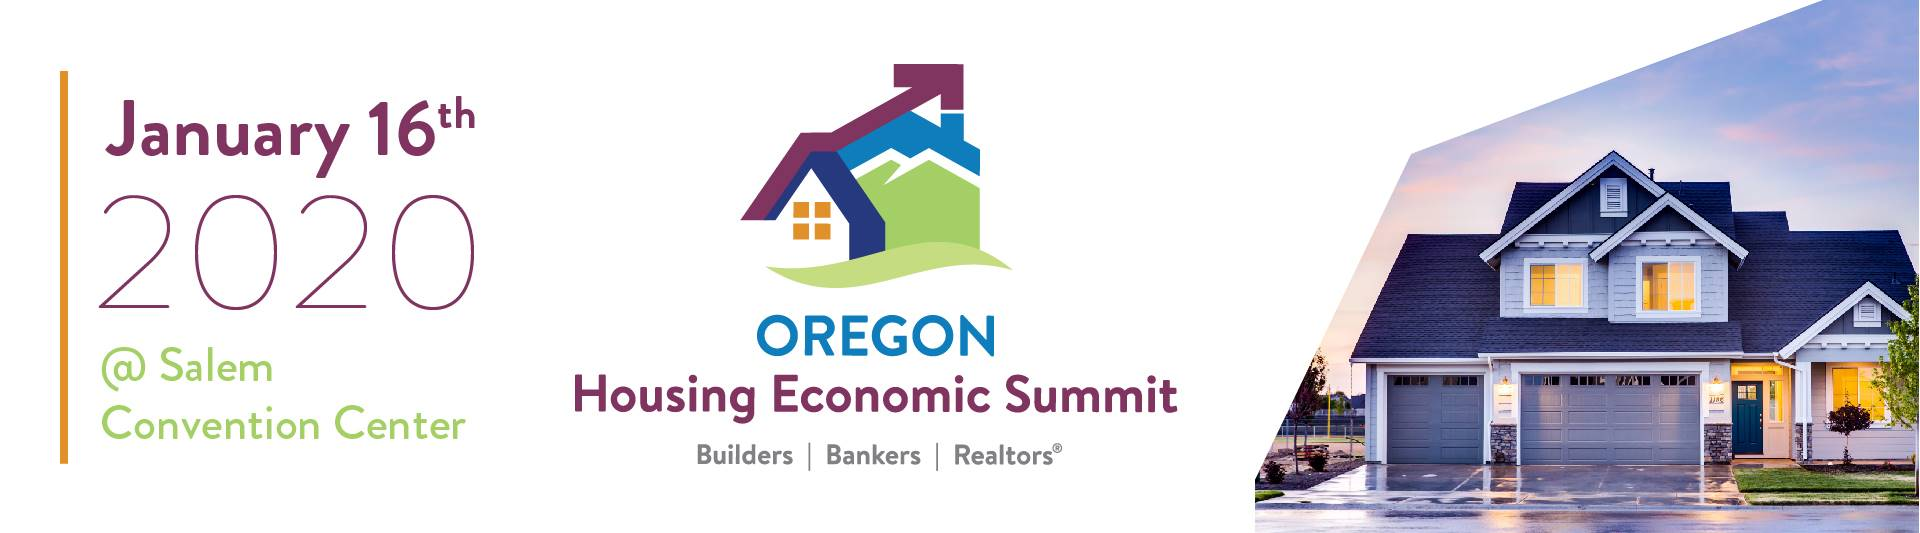 Oregon Housing Economic Summit